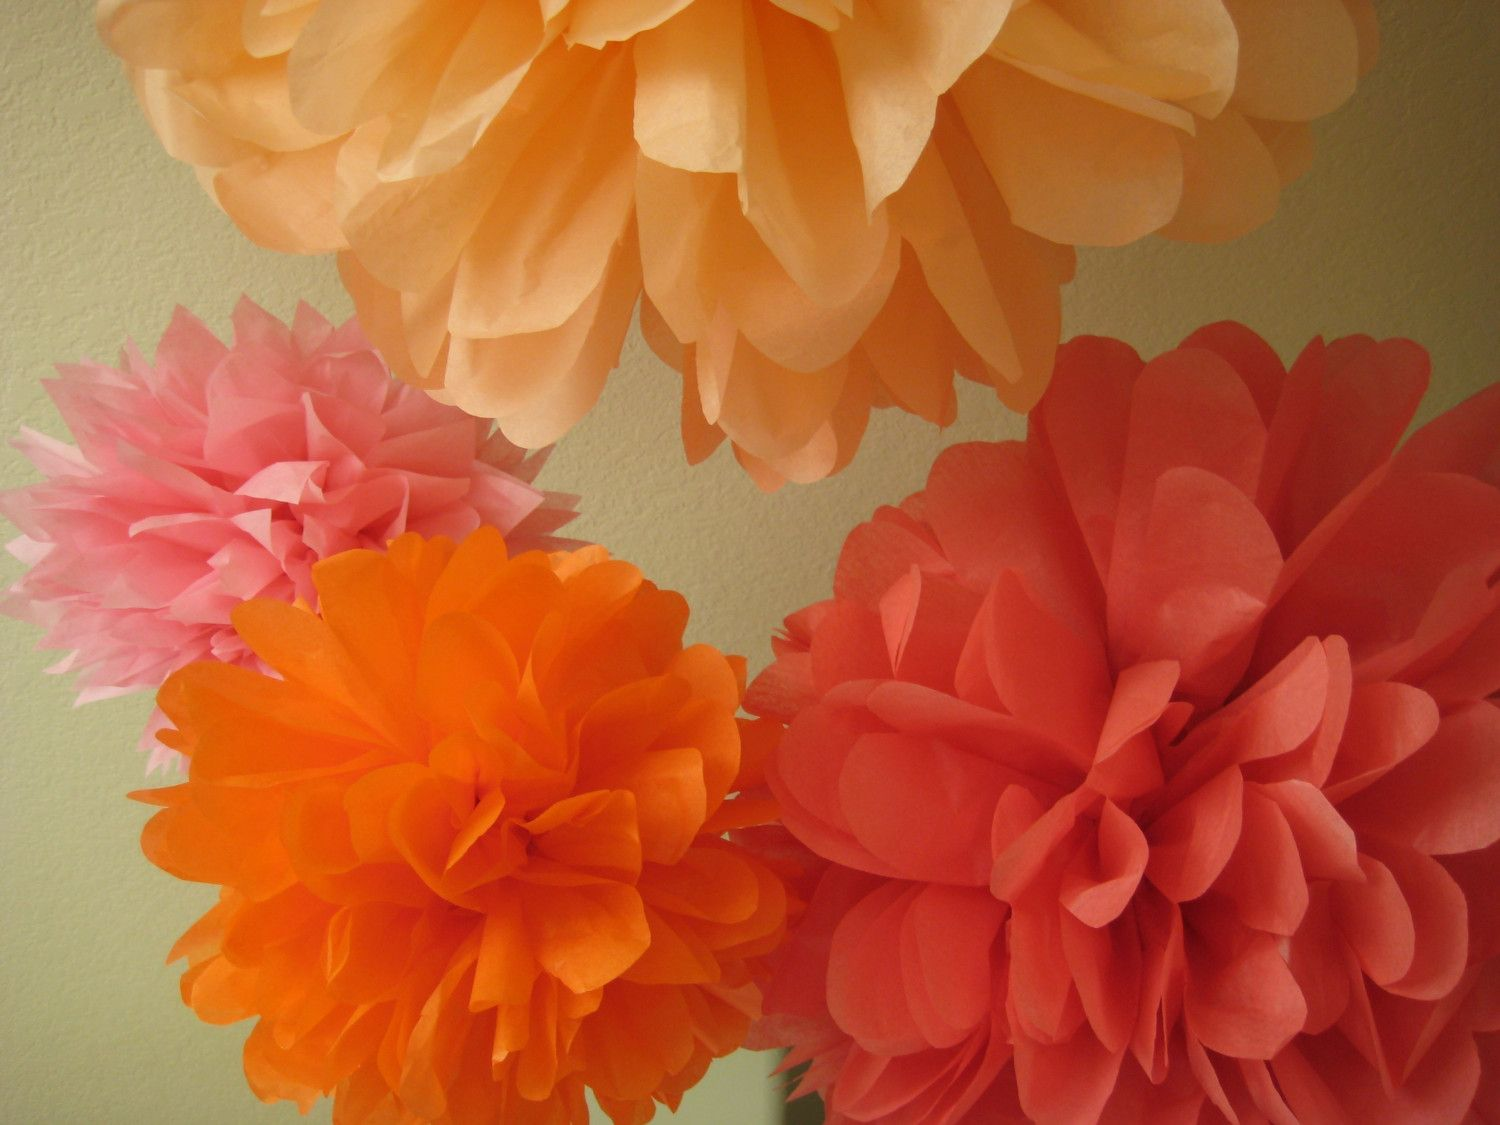 Baby shower wedding buy tissue paper poms tissue paper pom pom kit - 9 Tissue Paper Pom Poms Decoration Holiday Party Outdoor Picnic Diy Kit